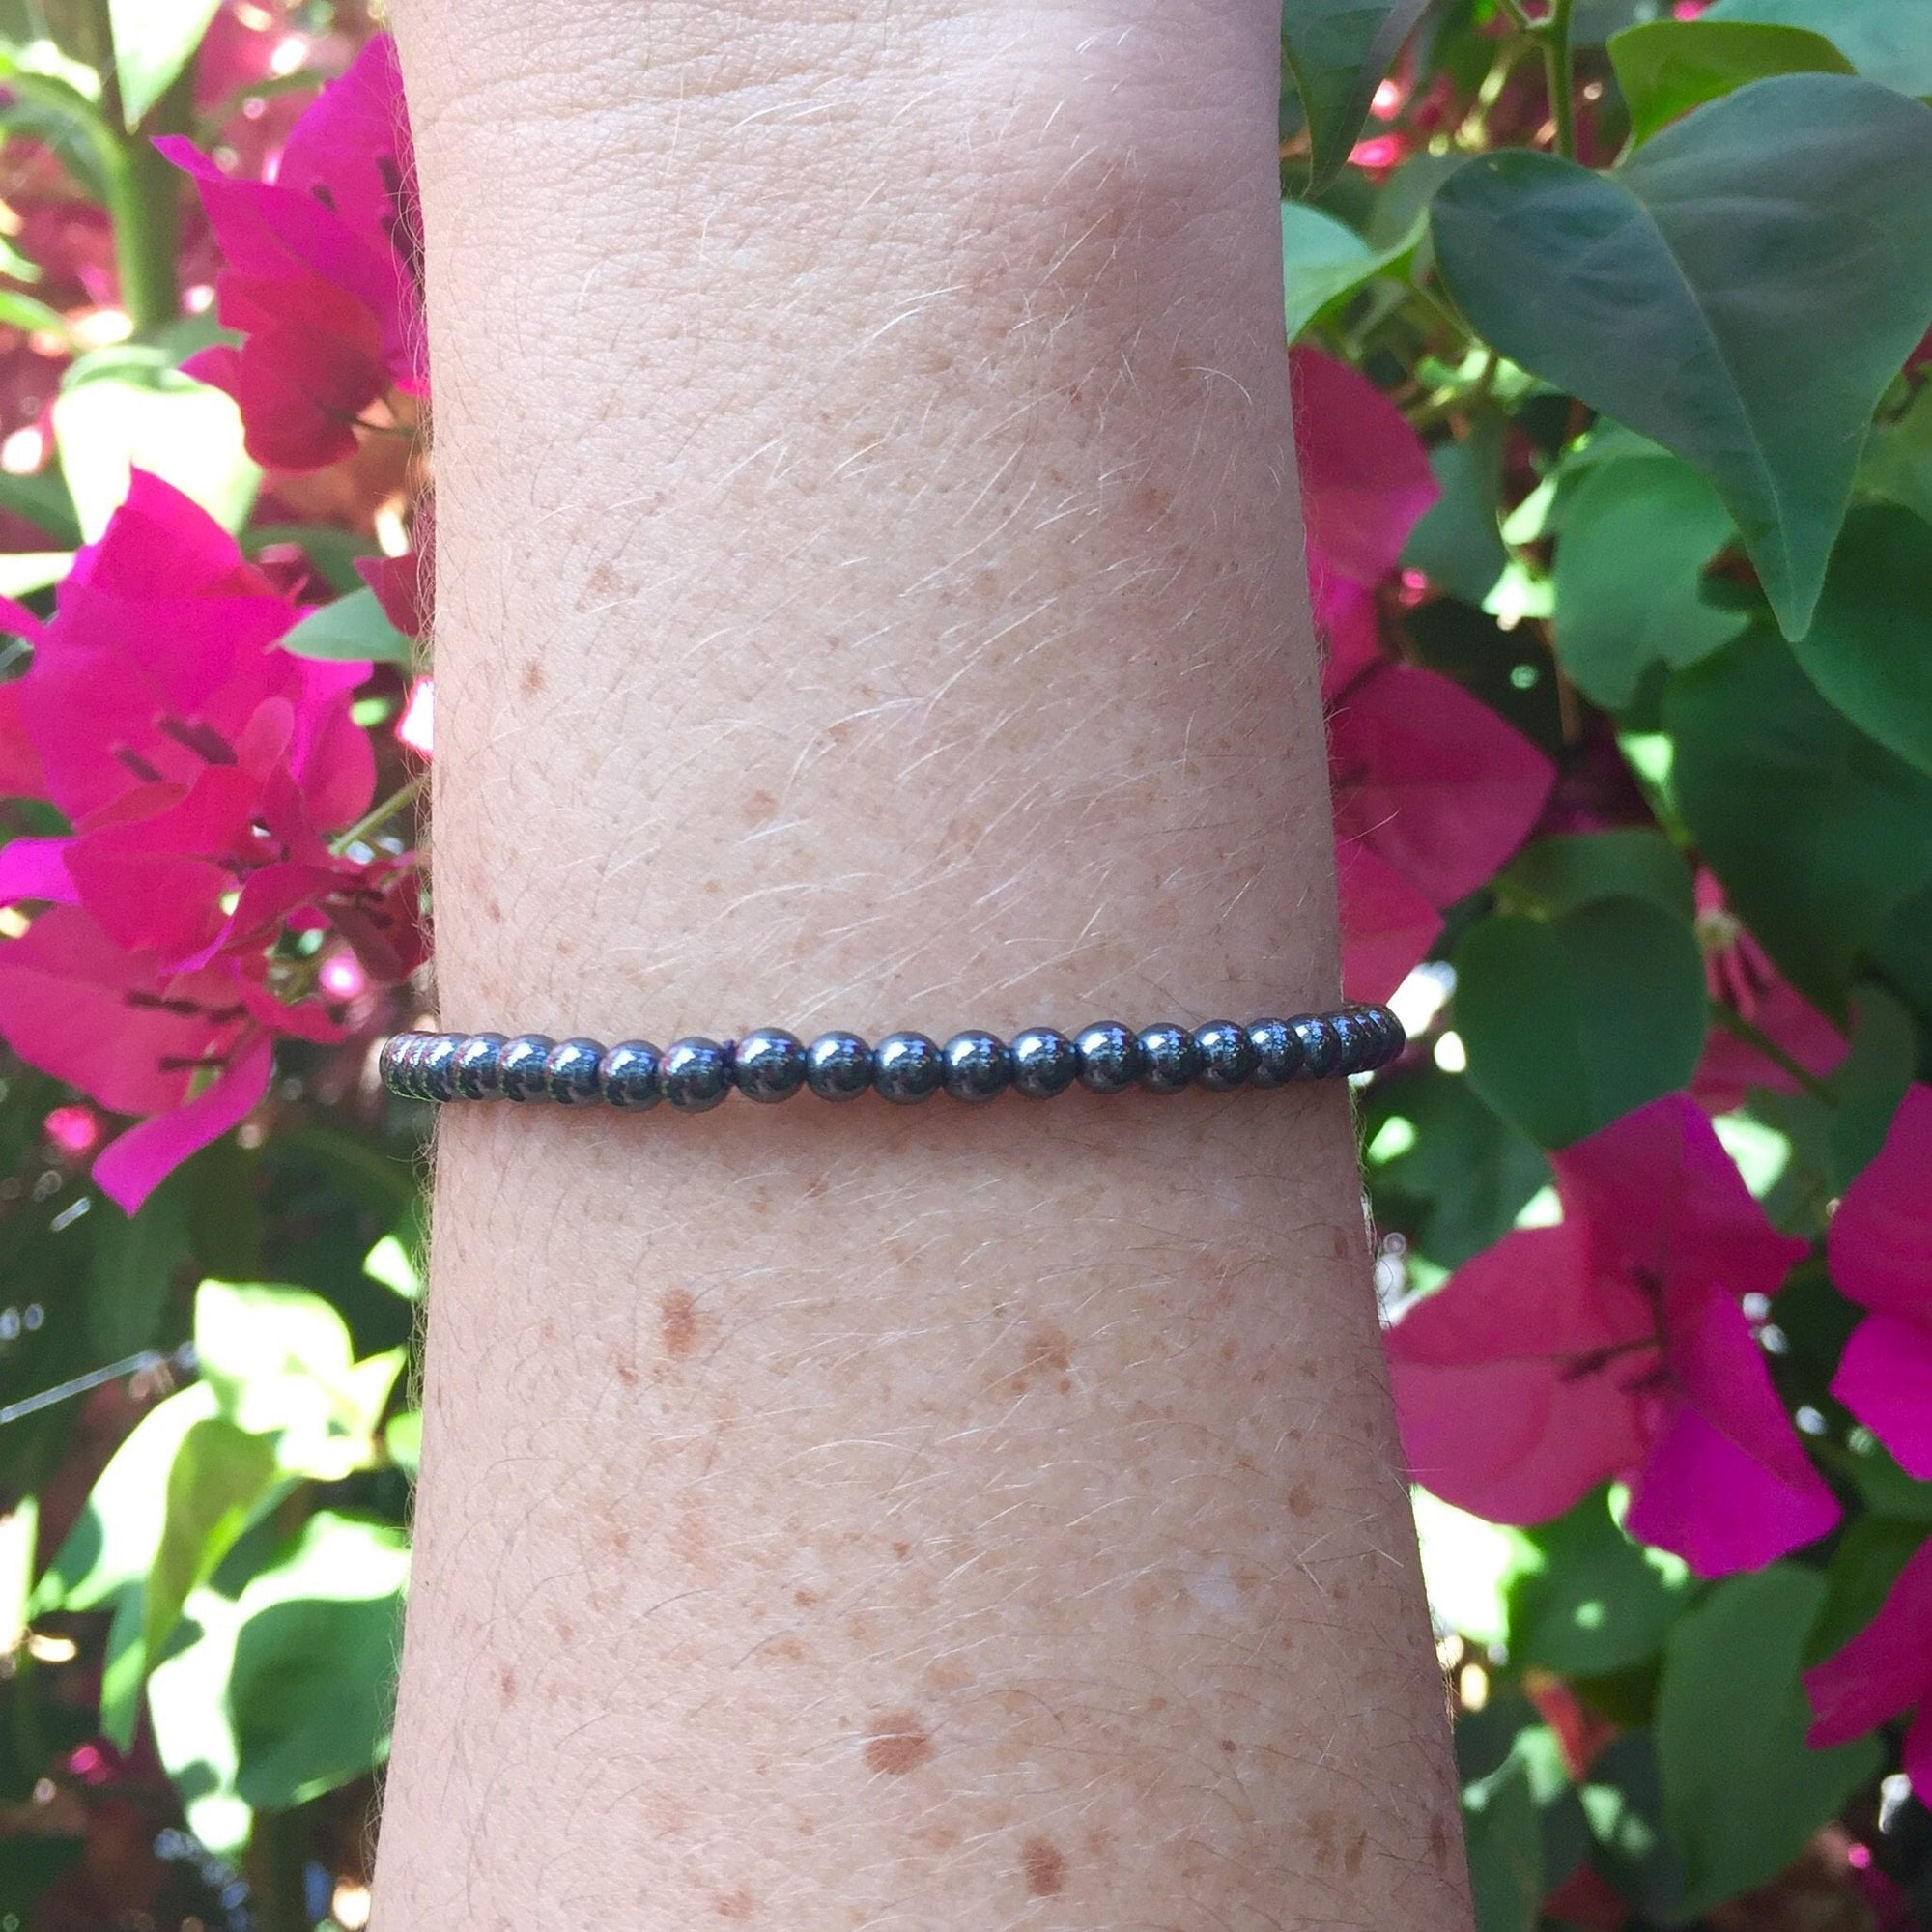 Hematite Bracelet - Sparkle Rock Pop